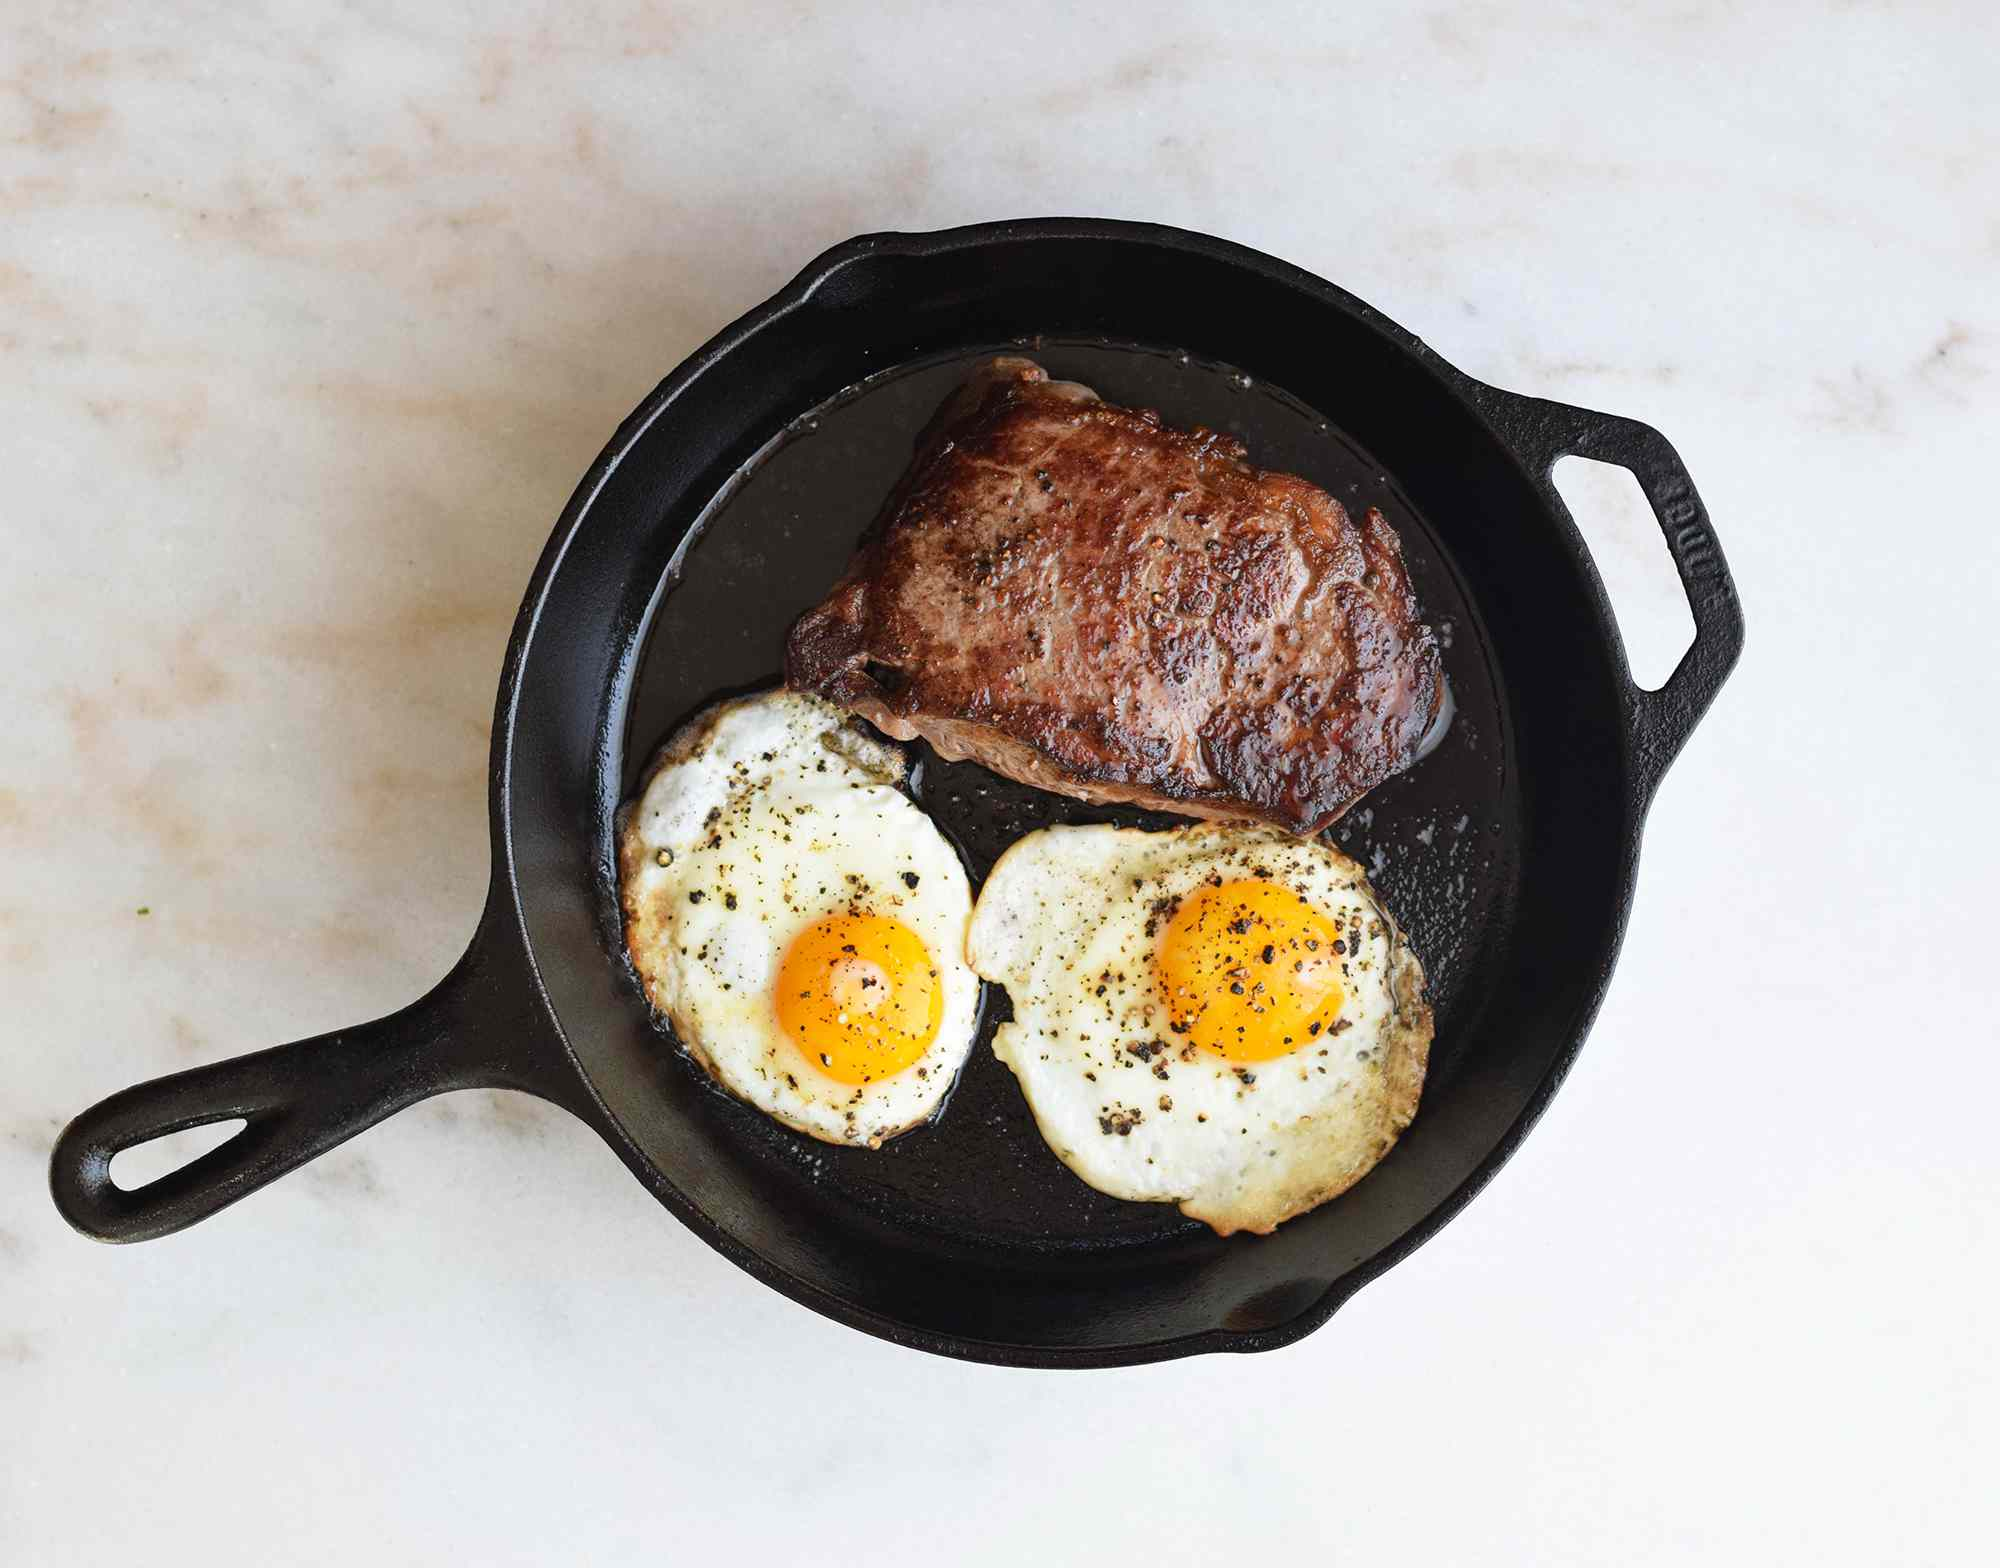 Steak and eggs cooking in a pan